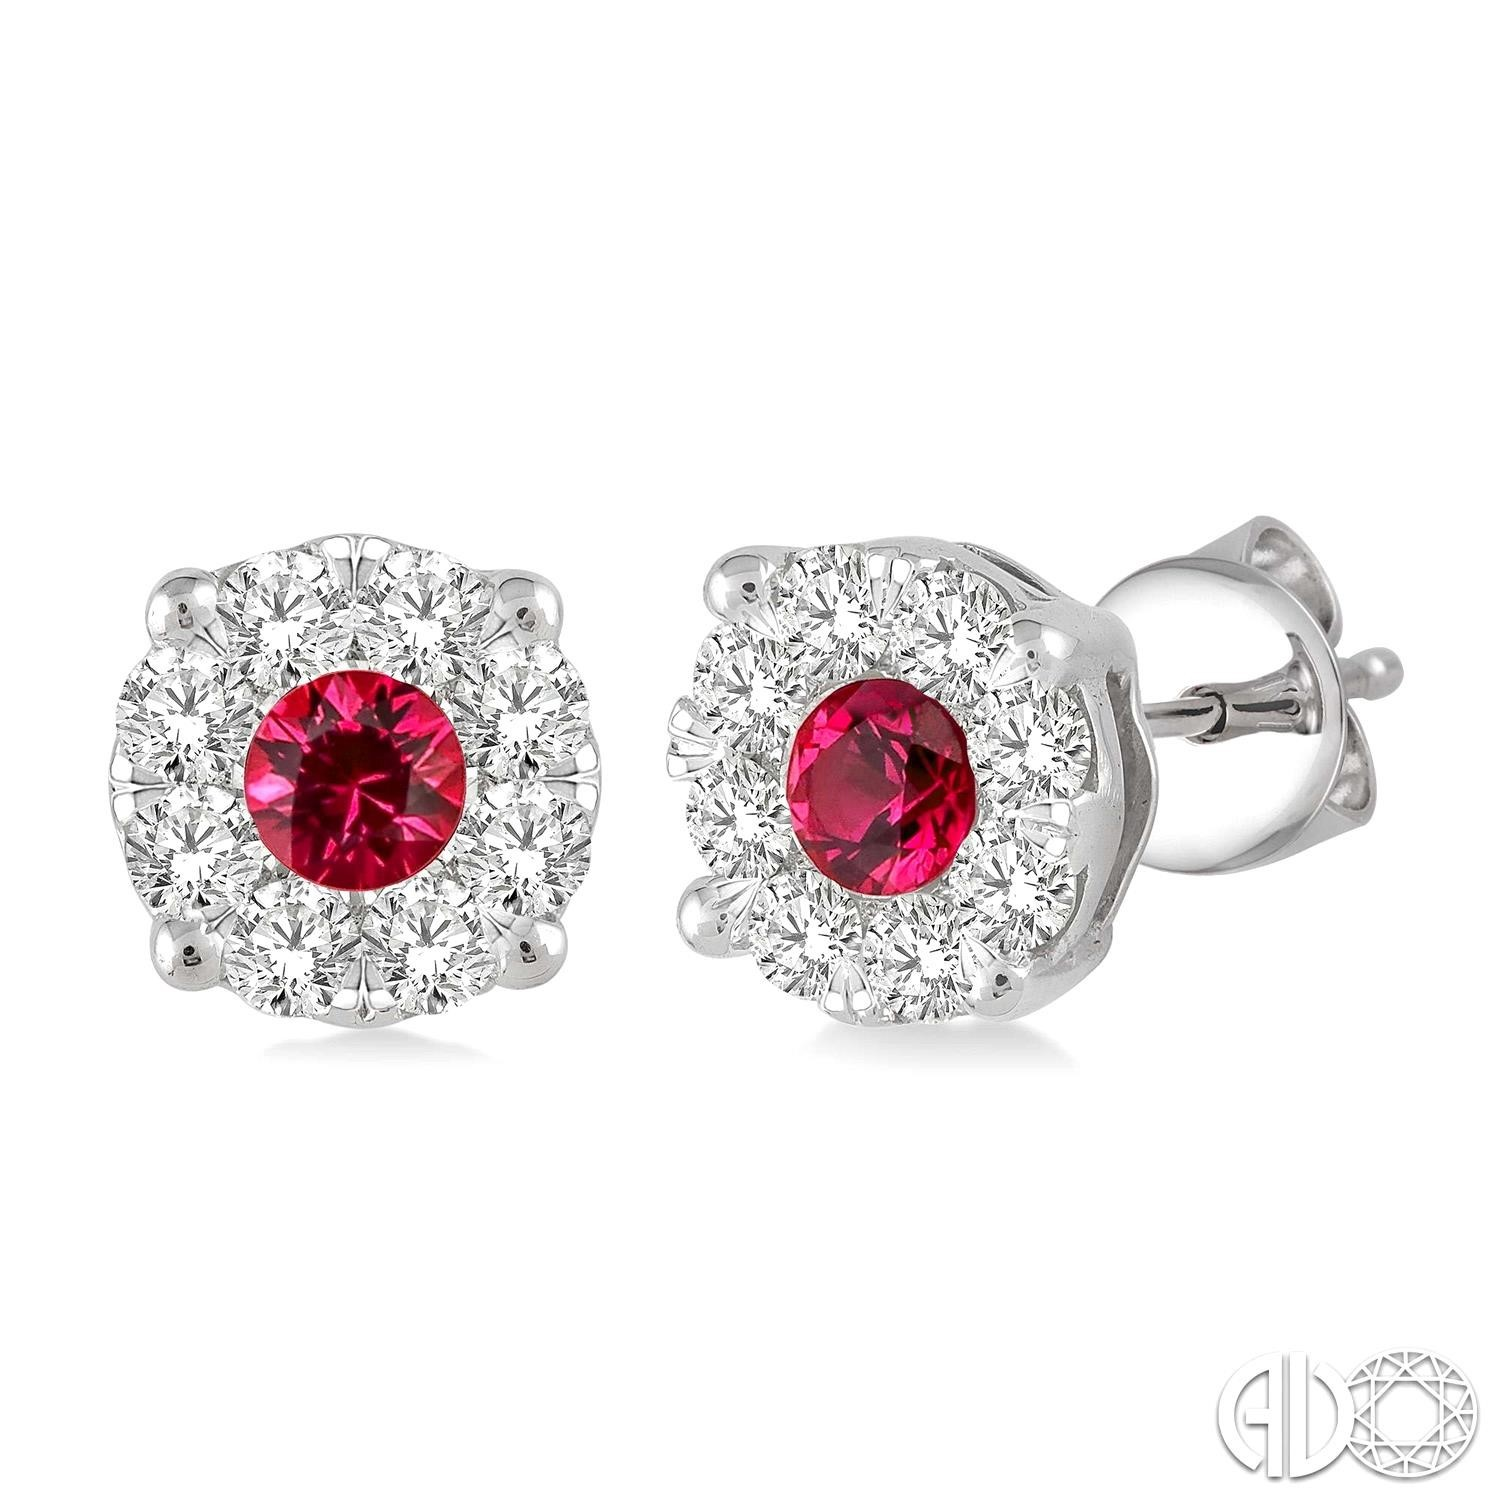 3.2 mm Round Cut Ruby and 1/2 Ctw Lovebright Diamond Earrings in 14K White Gold